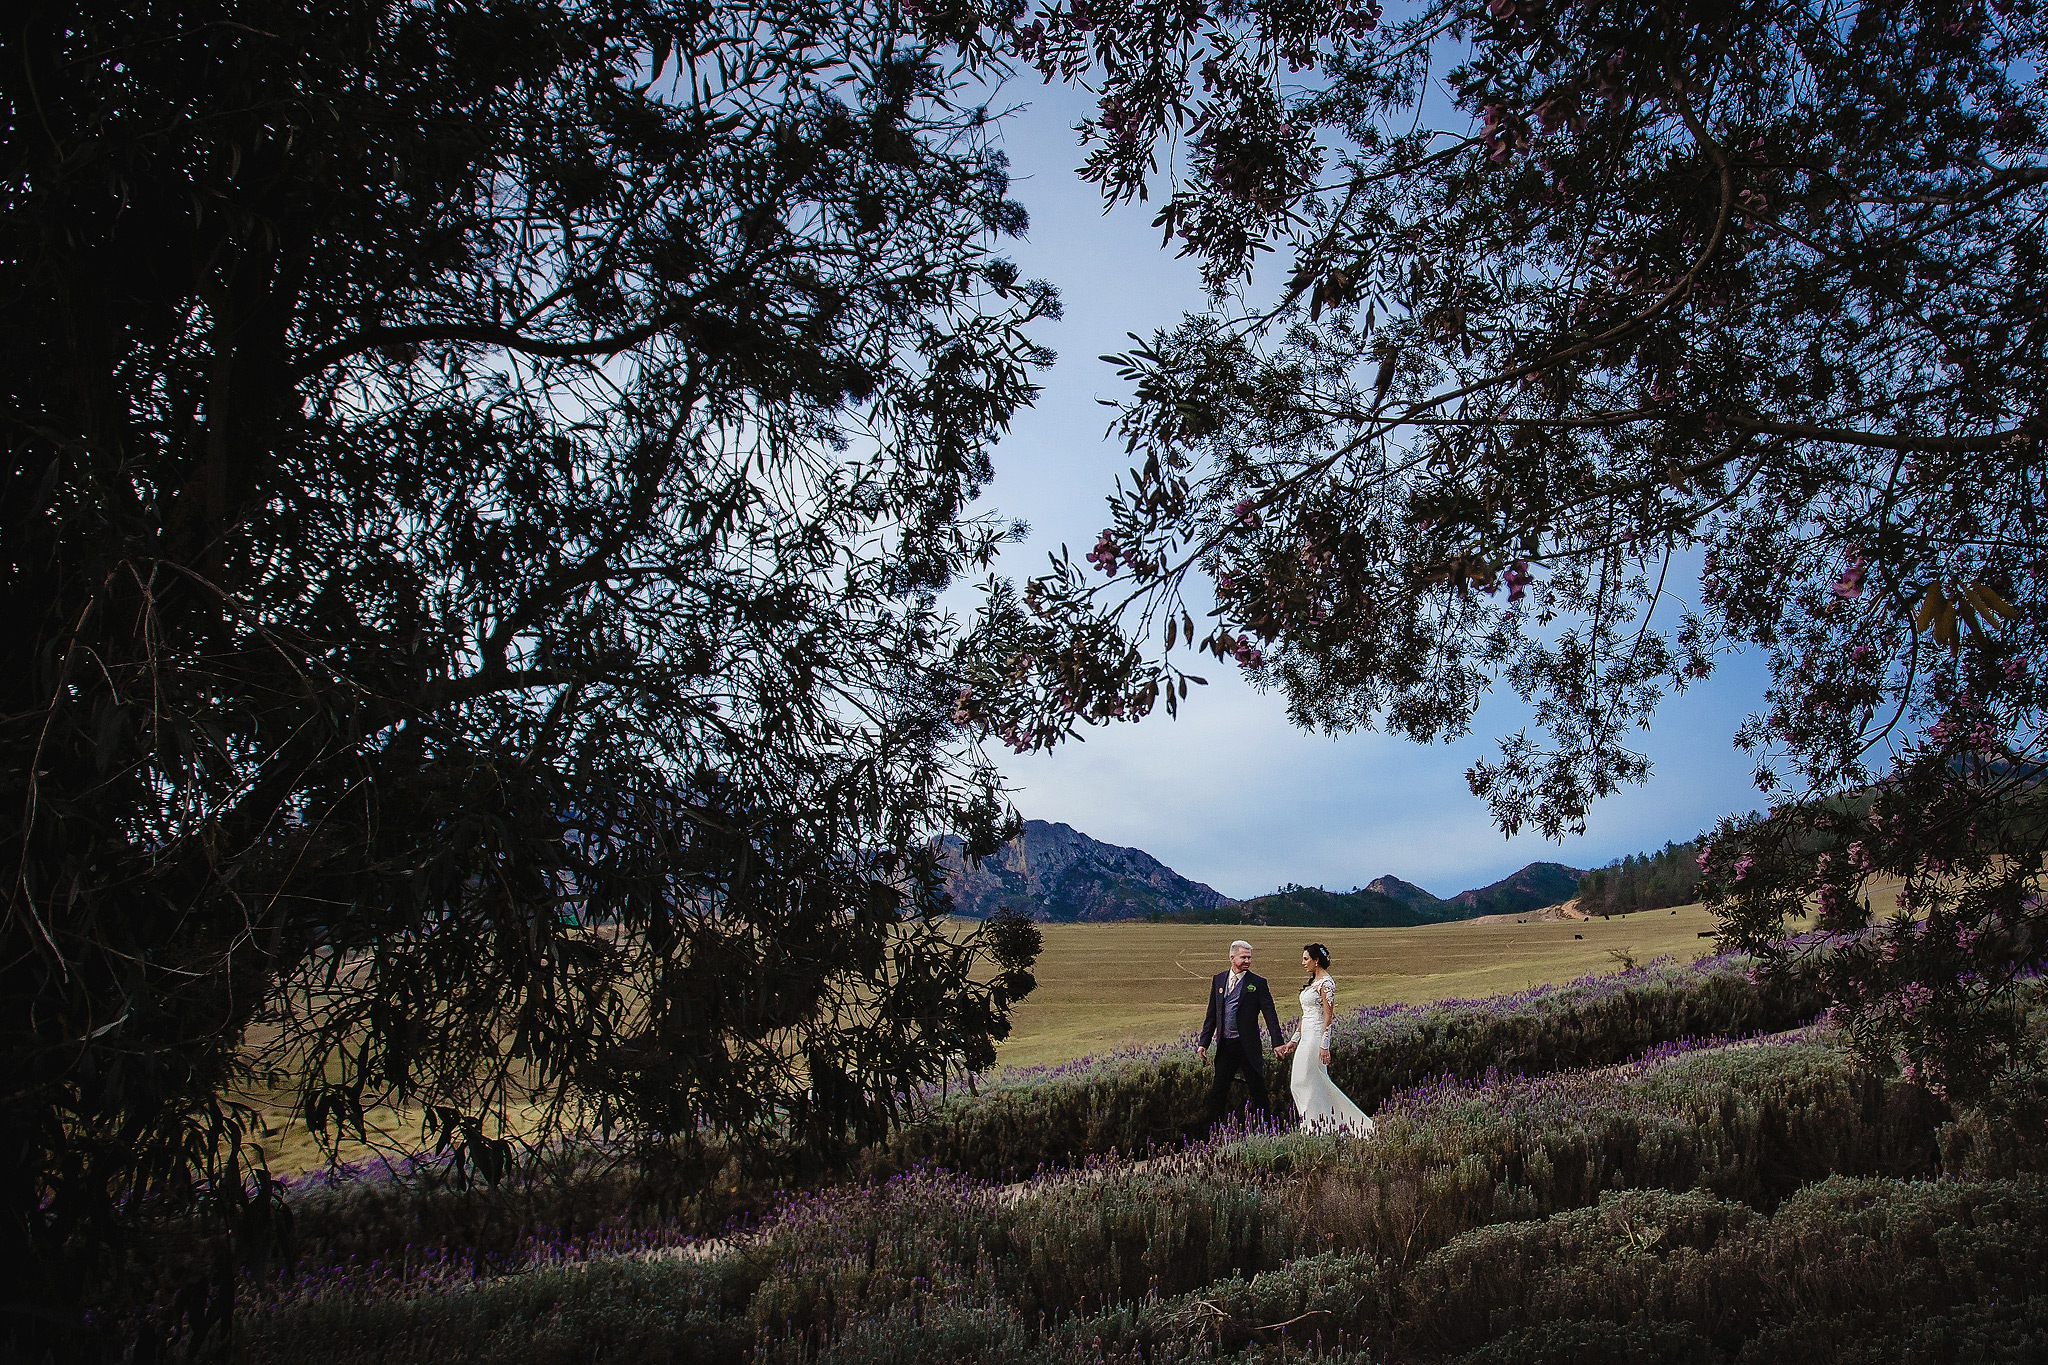 Couple on path through fields against trees and mountains - photo by Ruan Redelinghuys Photography